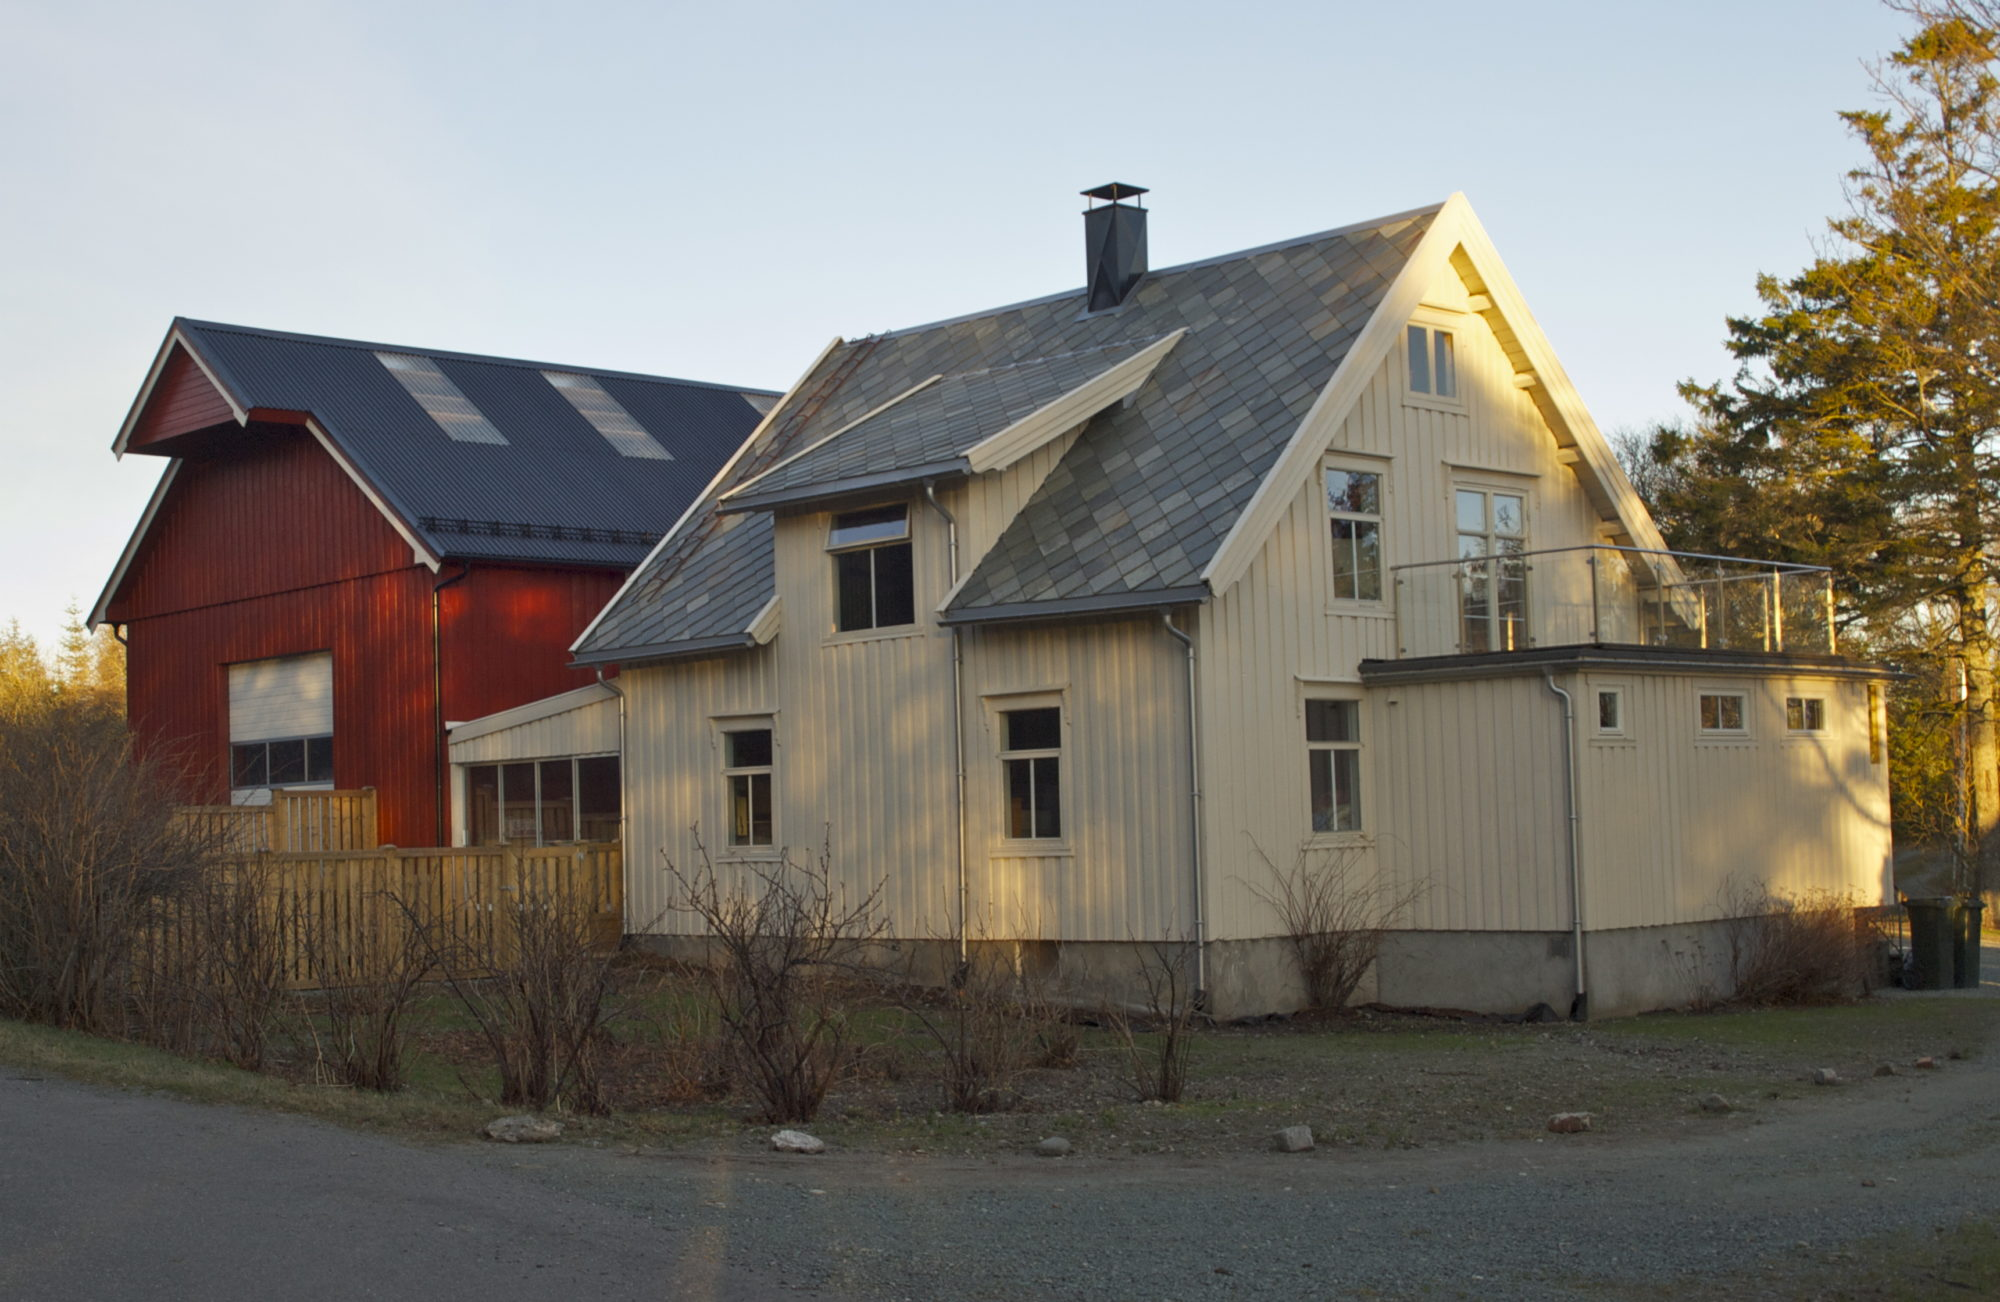 House Accommodation Austrått Agrotourism Holiday House In Norway With Accommodation